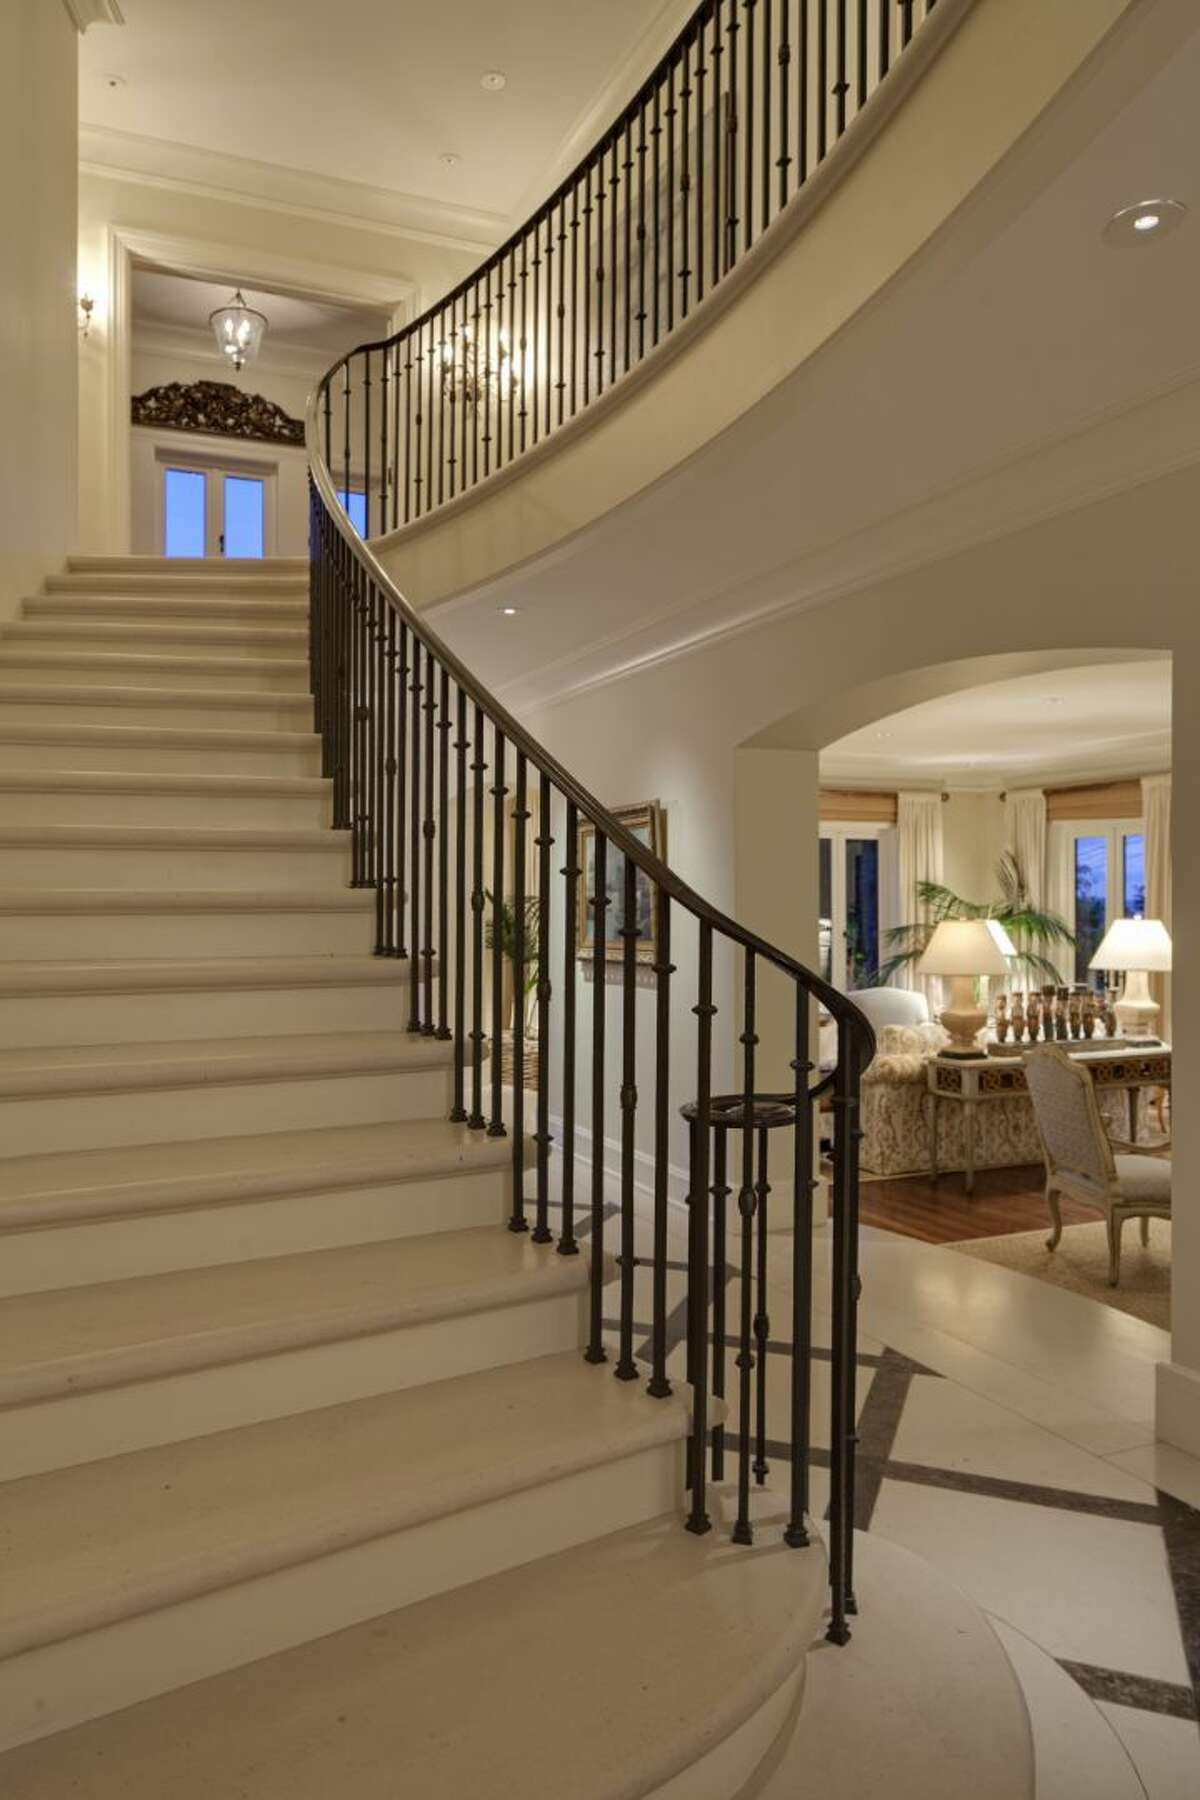 Foyer of a 1933 mansion at an undisclosed address on Queen Anne hill. It's listed for $11.5 million.